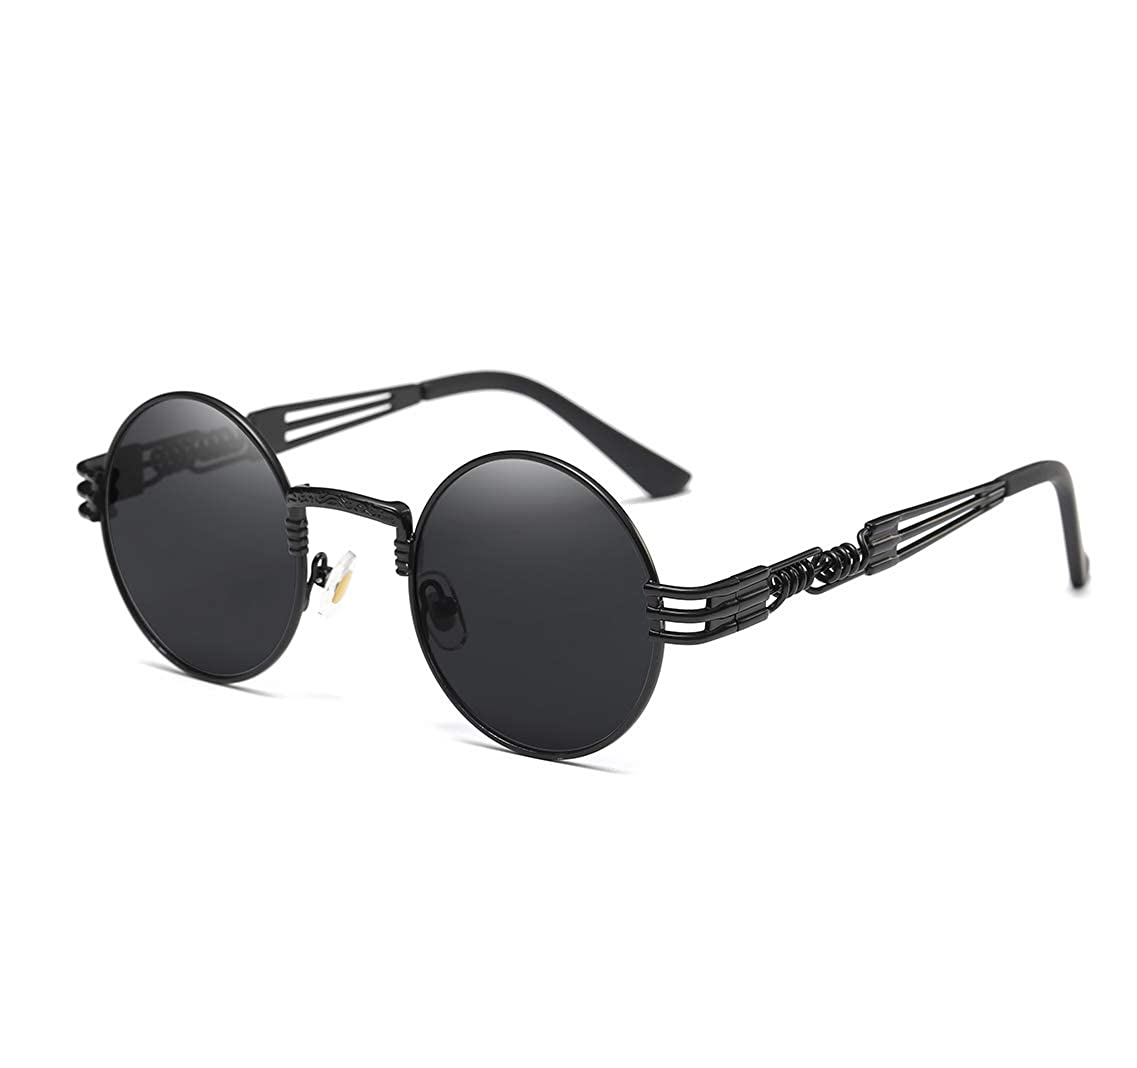 2ef091b09f6 Amazon.com  GAMT John Lennon Glasses Quavo Steampunk Round Sunglasses Circle  Metal Frame Eyewear for Men and Women Black Frame Grey Lens  Shoes